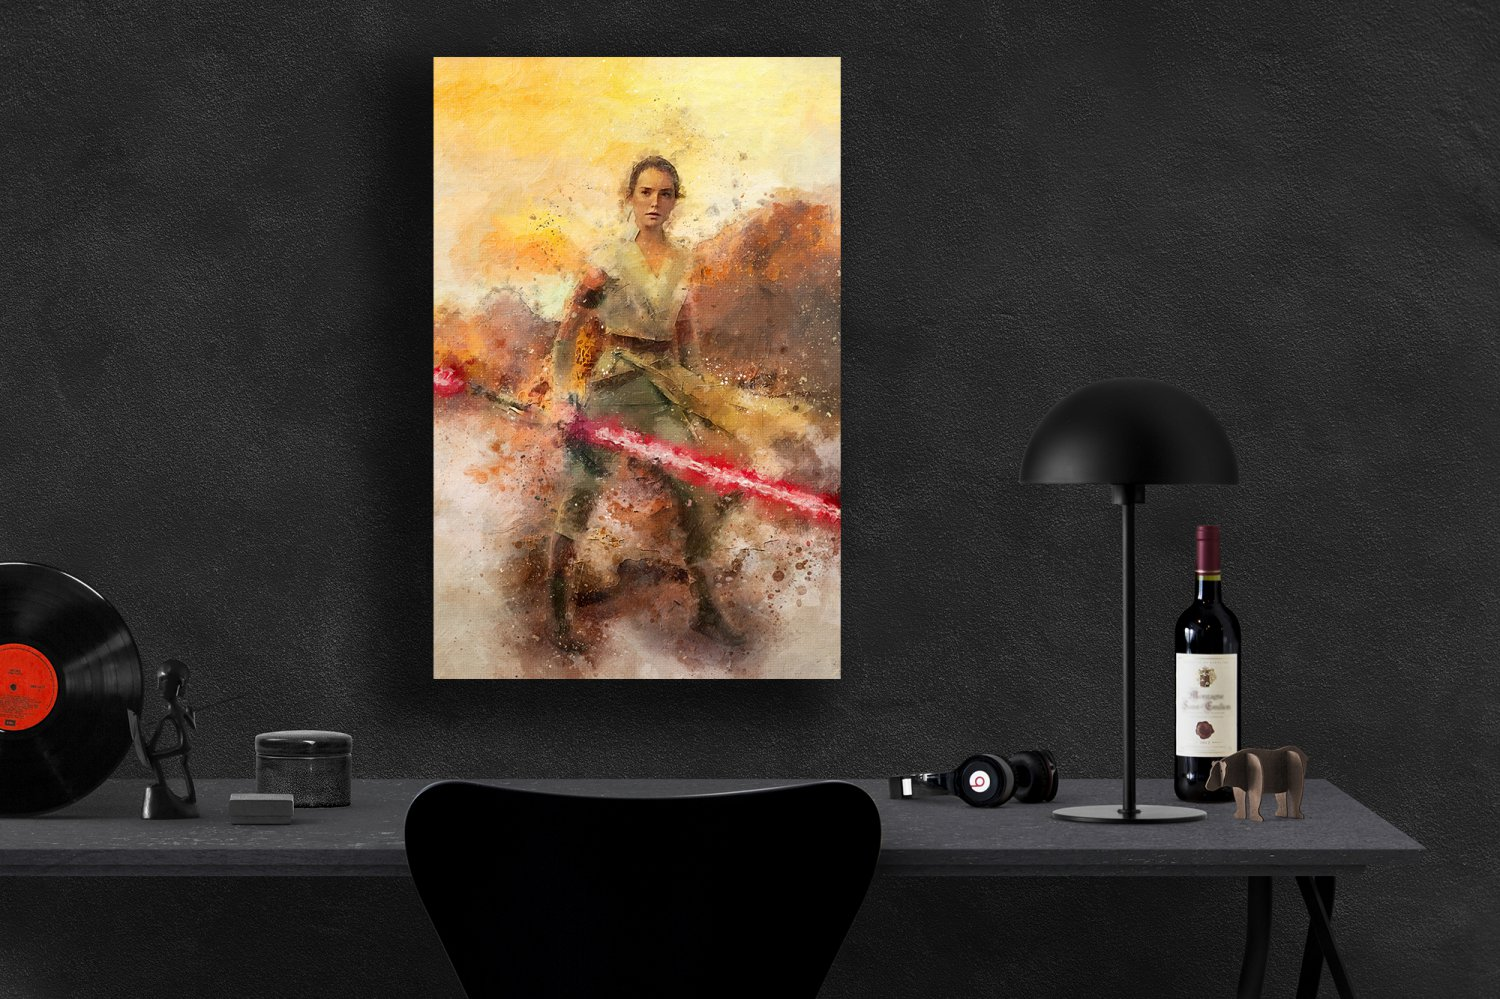 Star Wars, Rey, Daisy Ridley, The Rise of Skywalker  24x35 inches Canvas Print